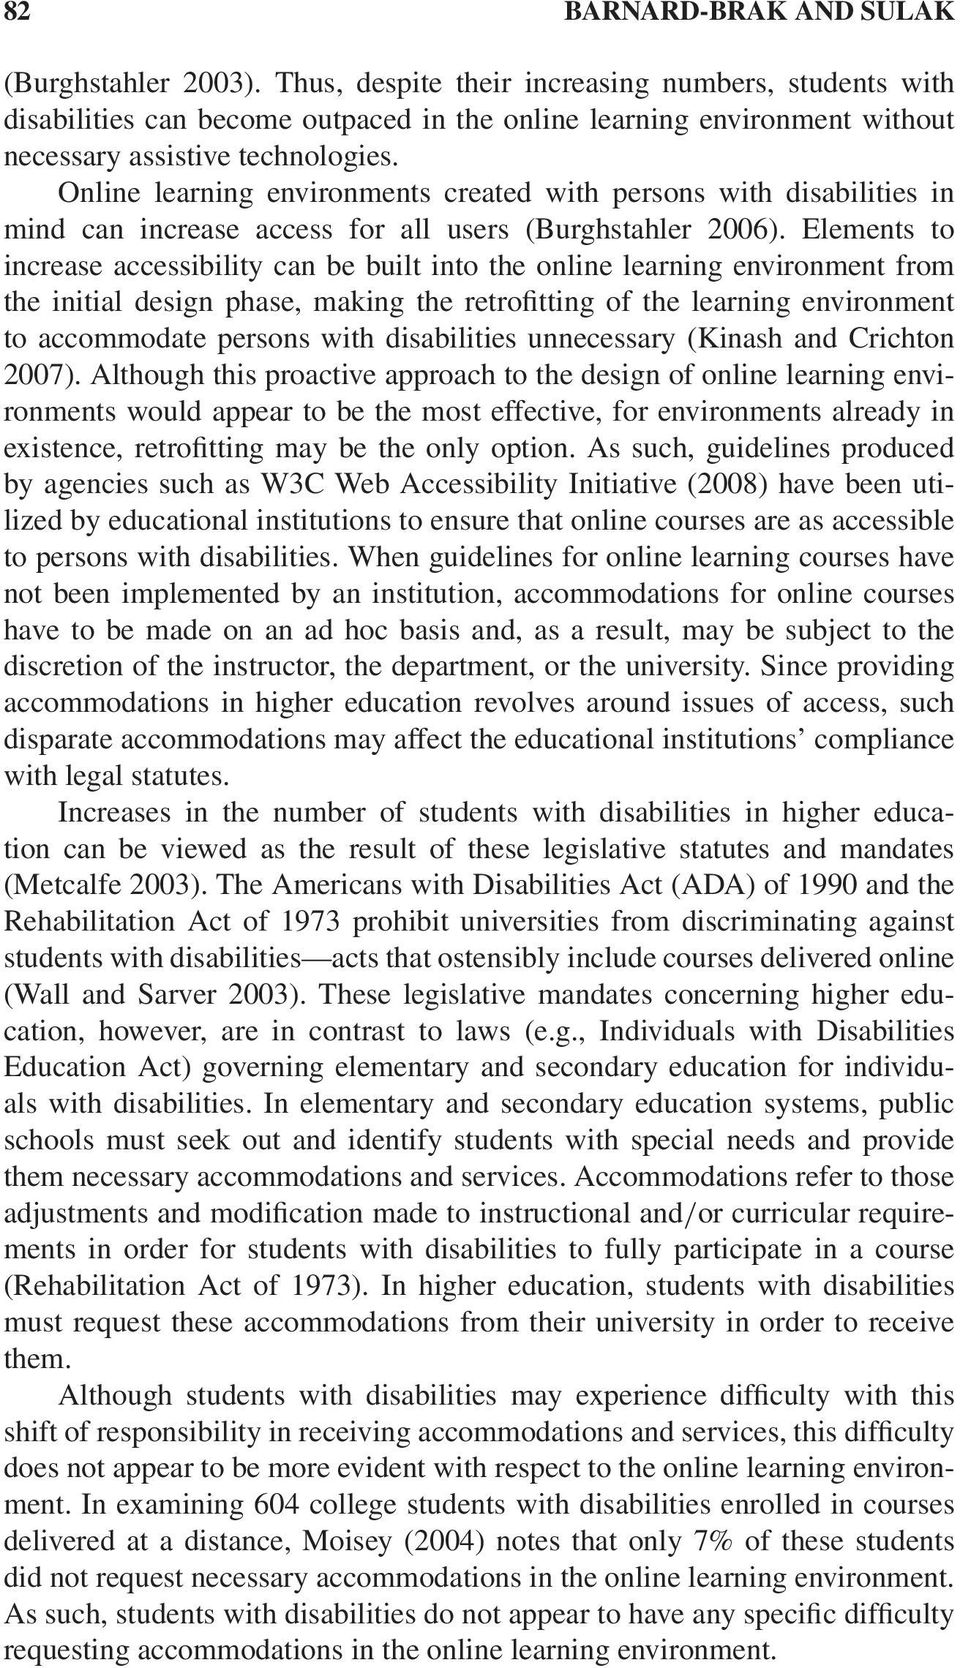 Online learning environments created with persons with disabilities in mind can increase access for all users (Burghstahler 2006).